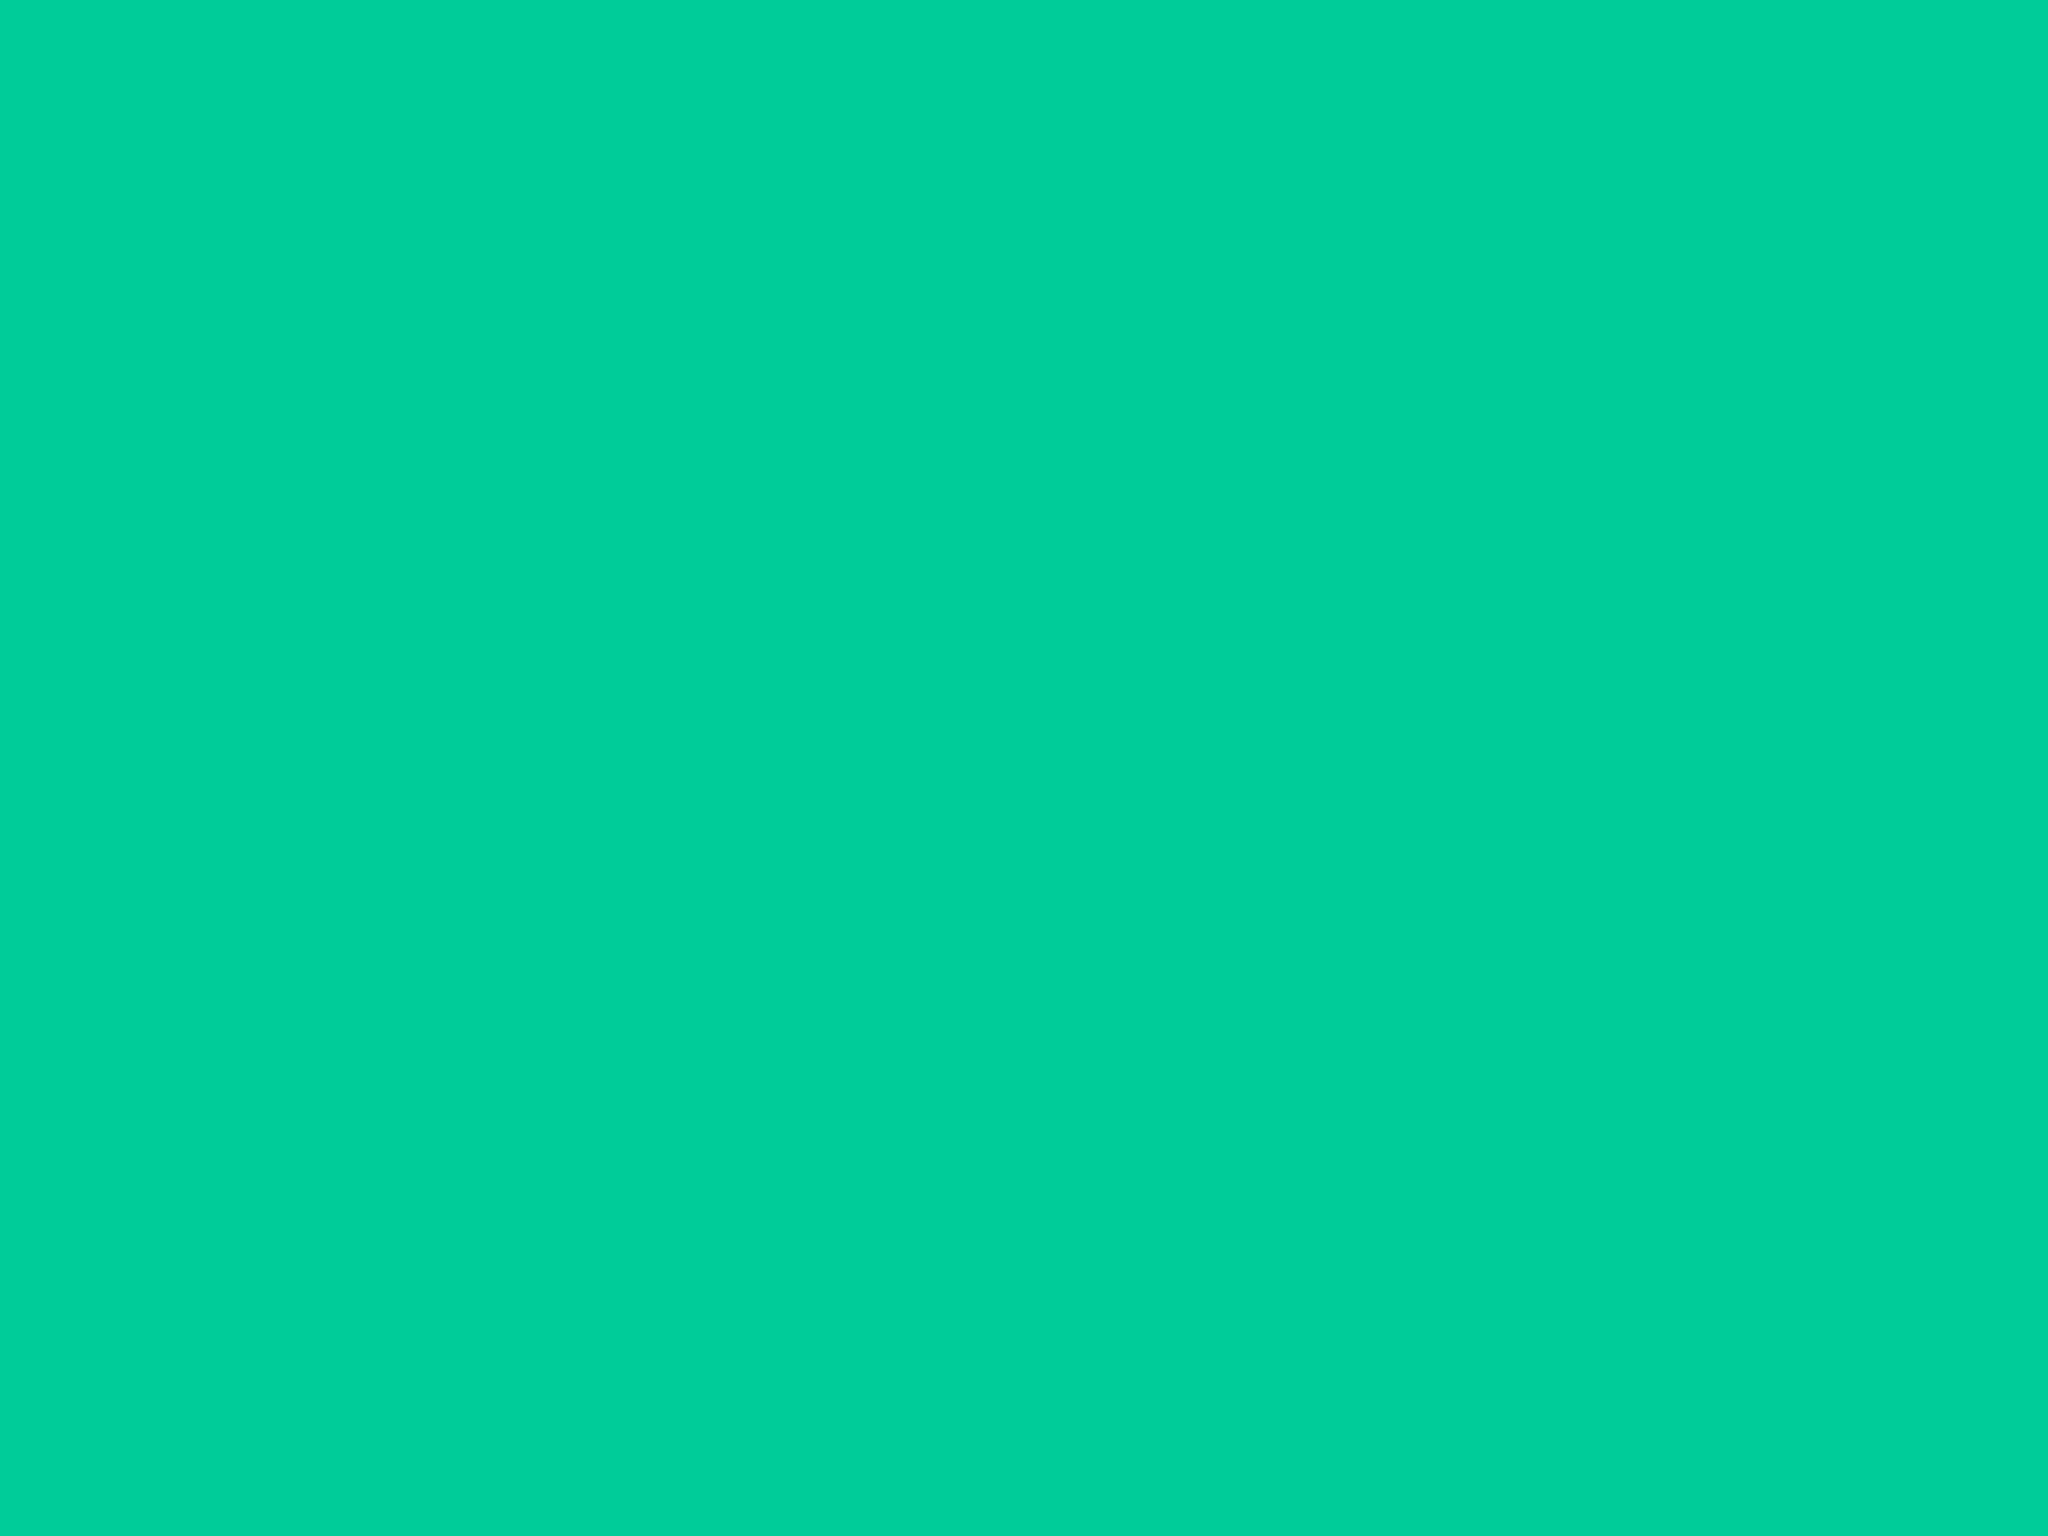 2048x1536 Caribbean Green Solid Color Background